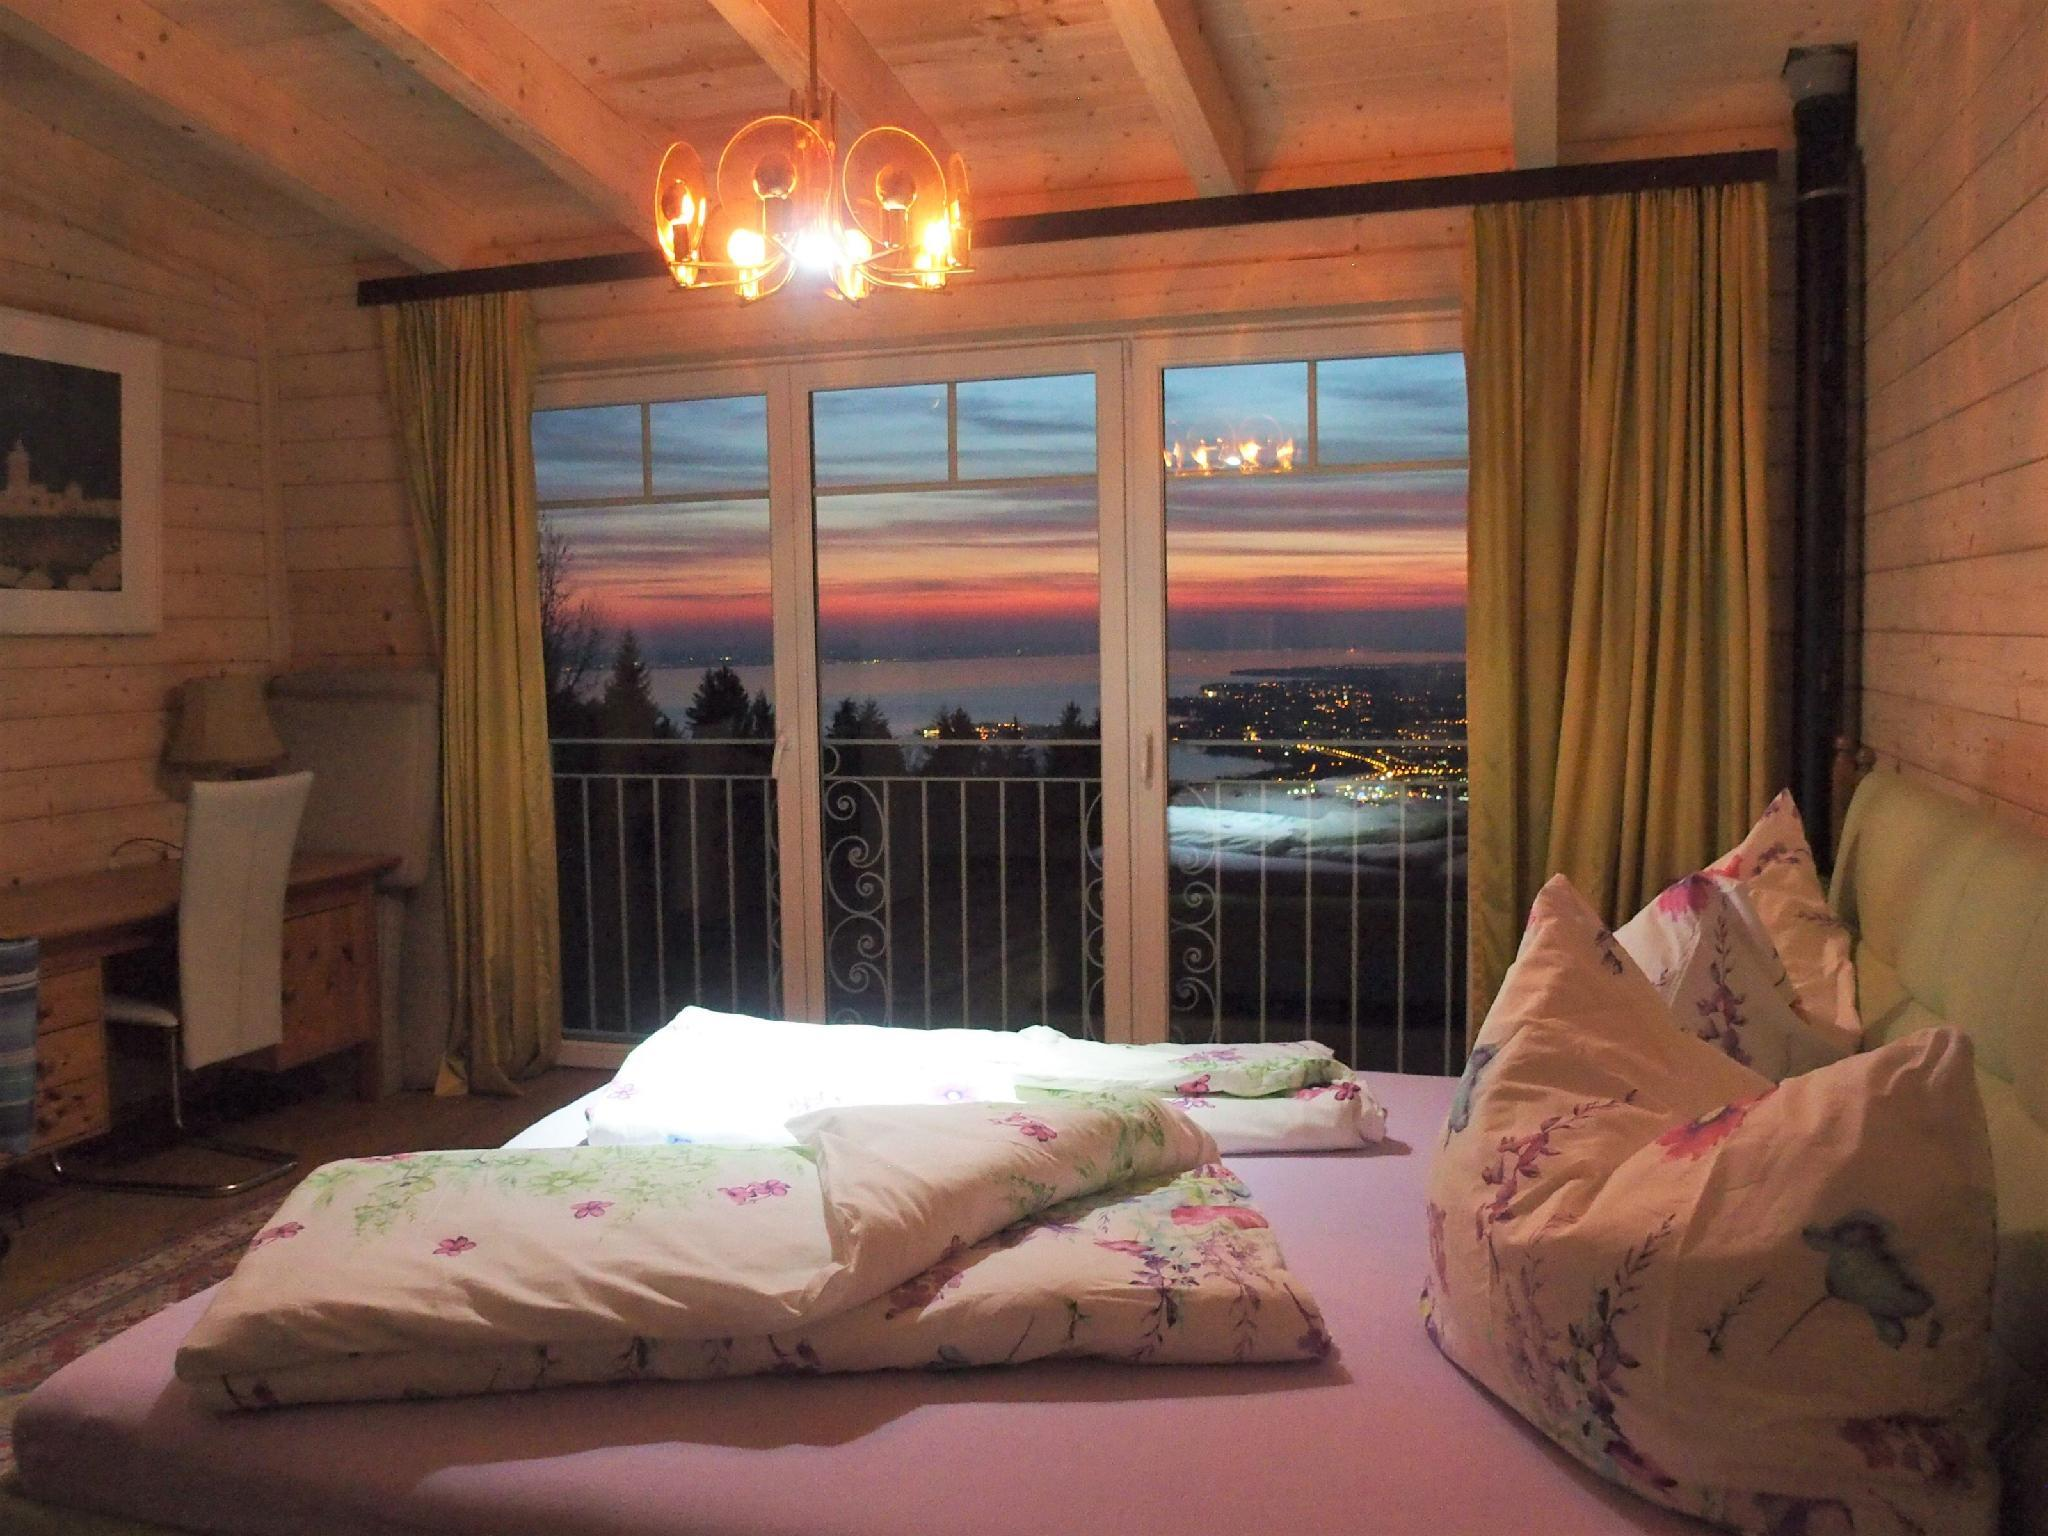 Lakeview Suite At The Edge Of The Forrest